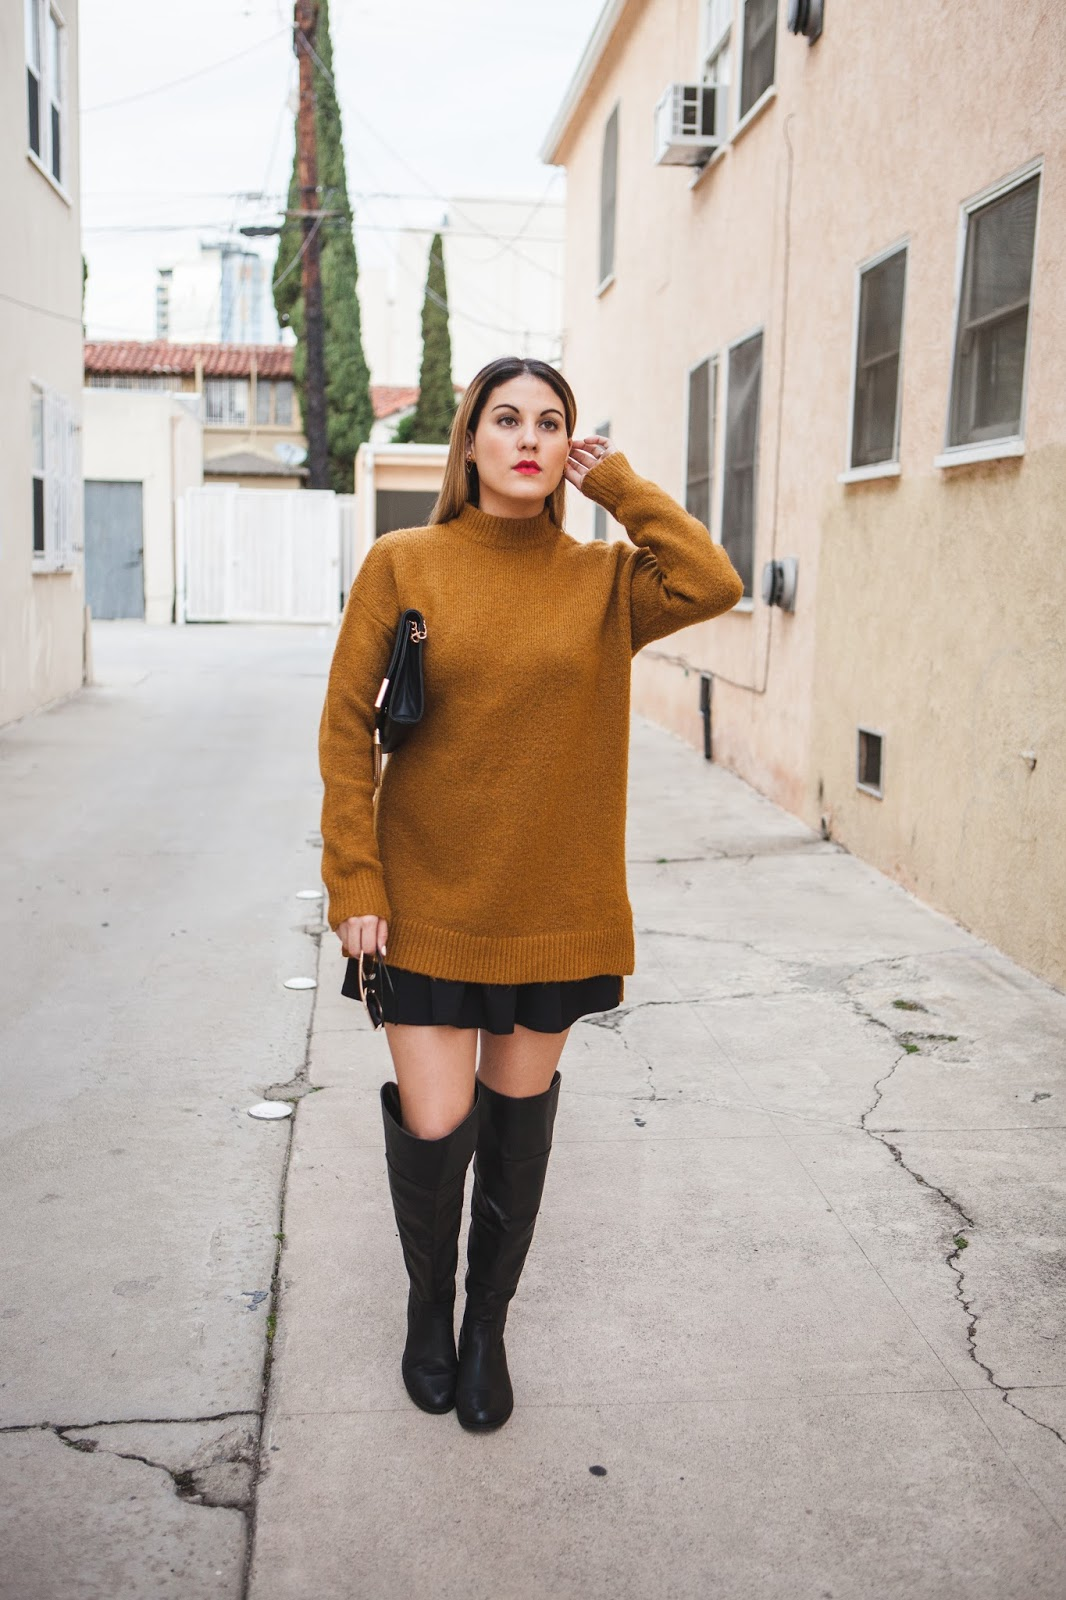 Los Angeles Fashion Blogger My Cup of Chic